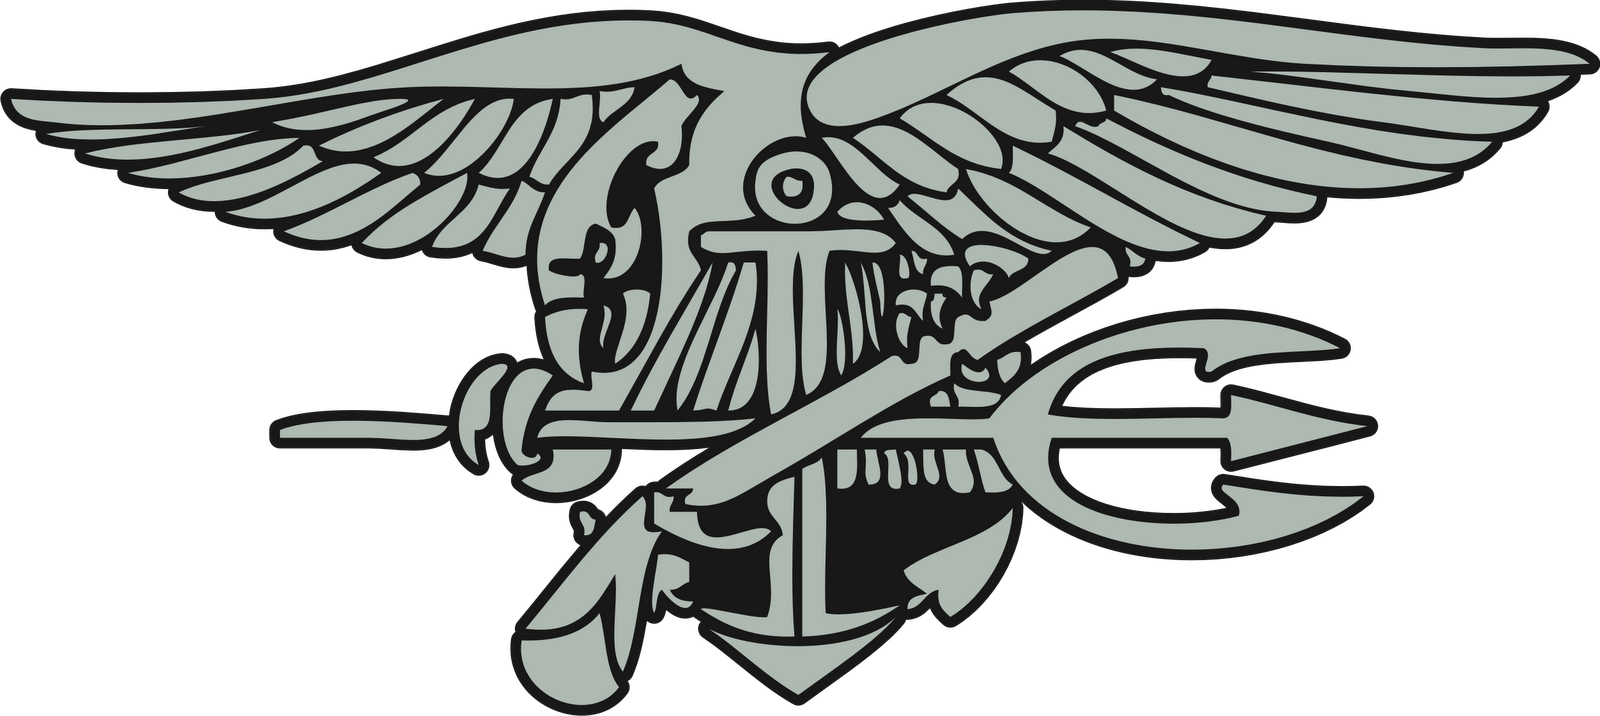 Navy cross clipart png royalty free library 28+ Collection of Navy Seal Emblem Drawing | High quality, free ... png royalty free library